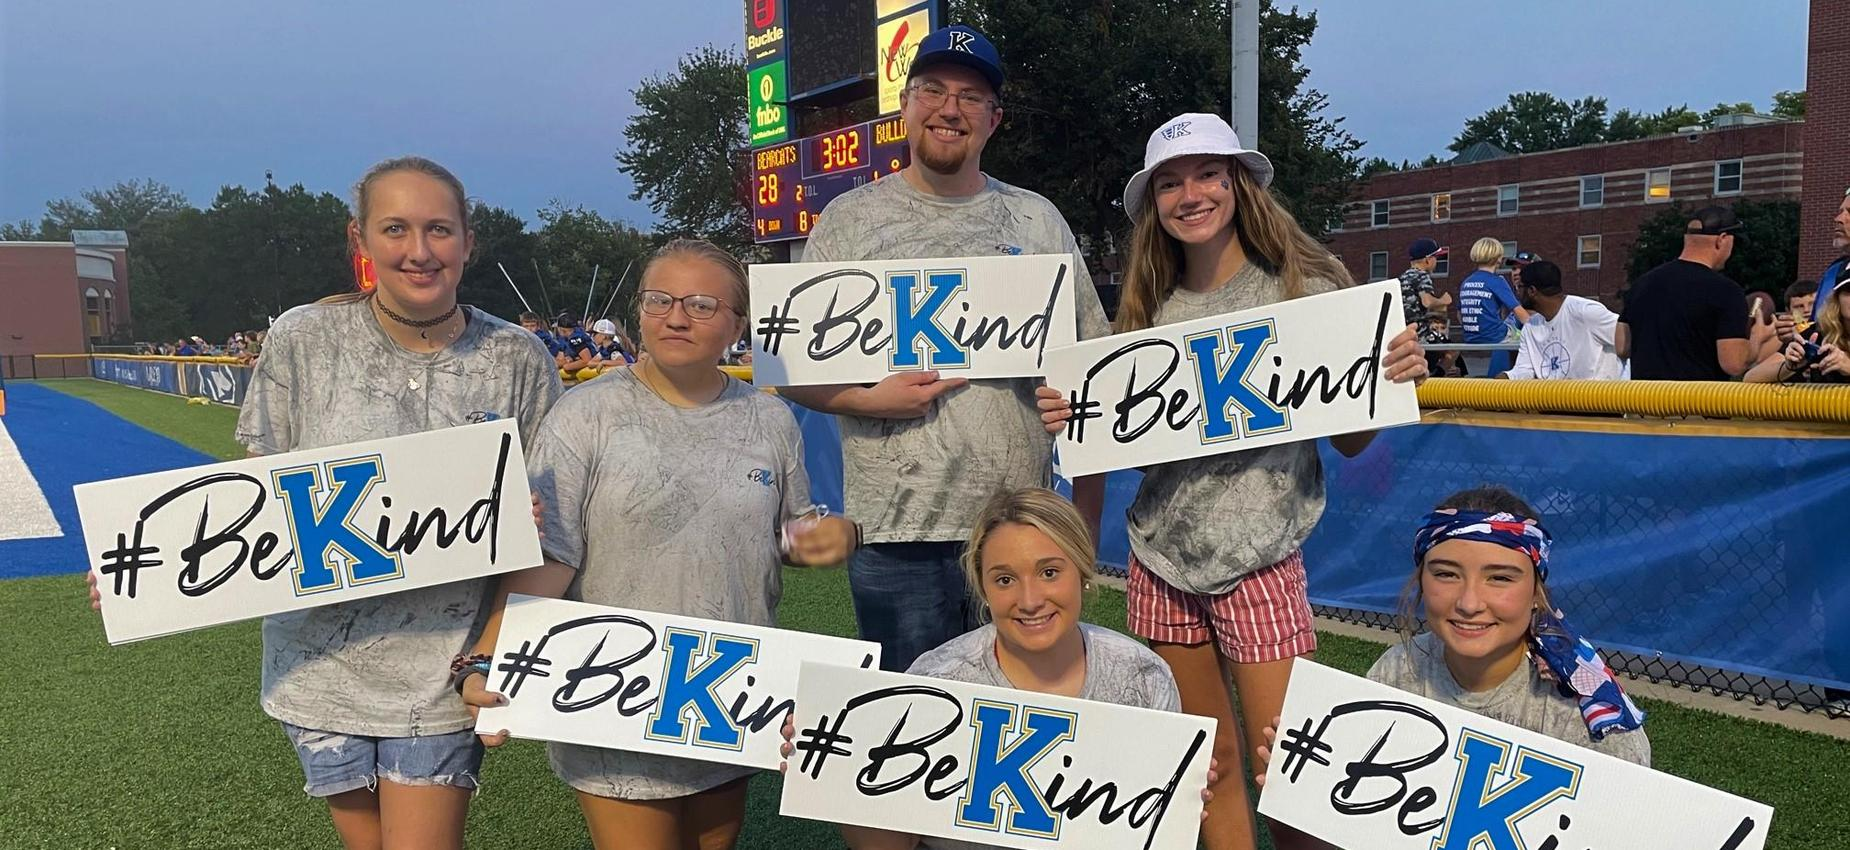 BeKind signs with kids